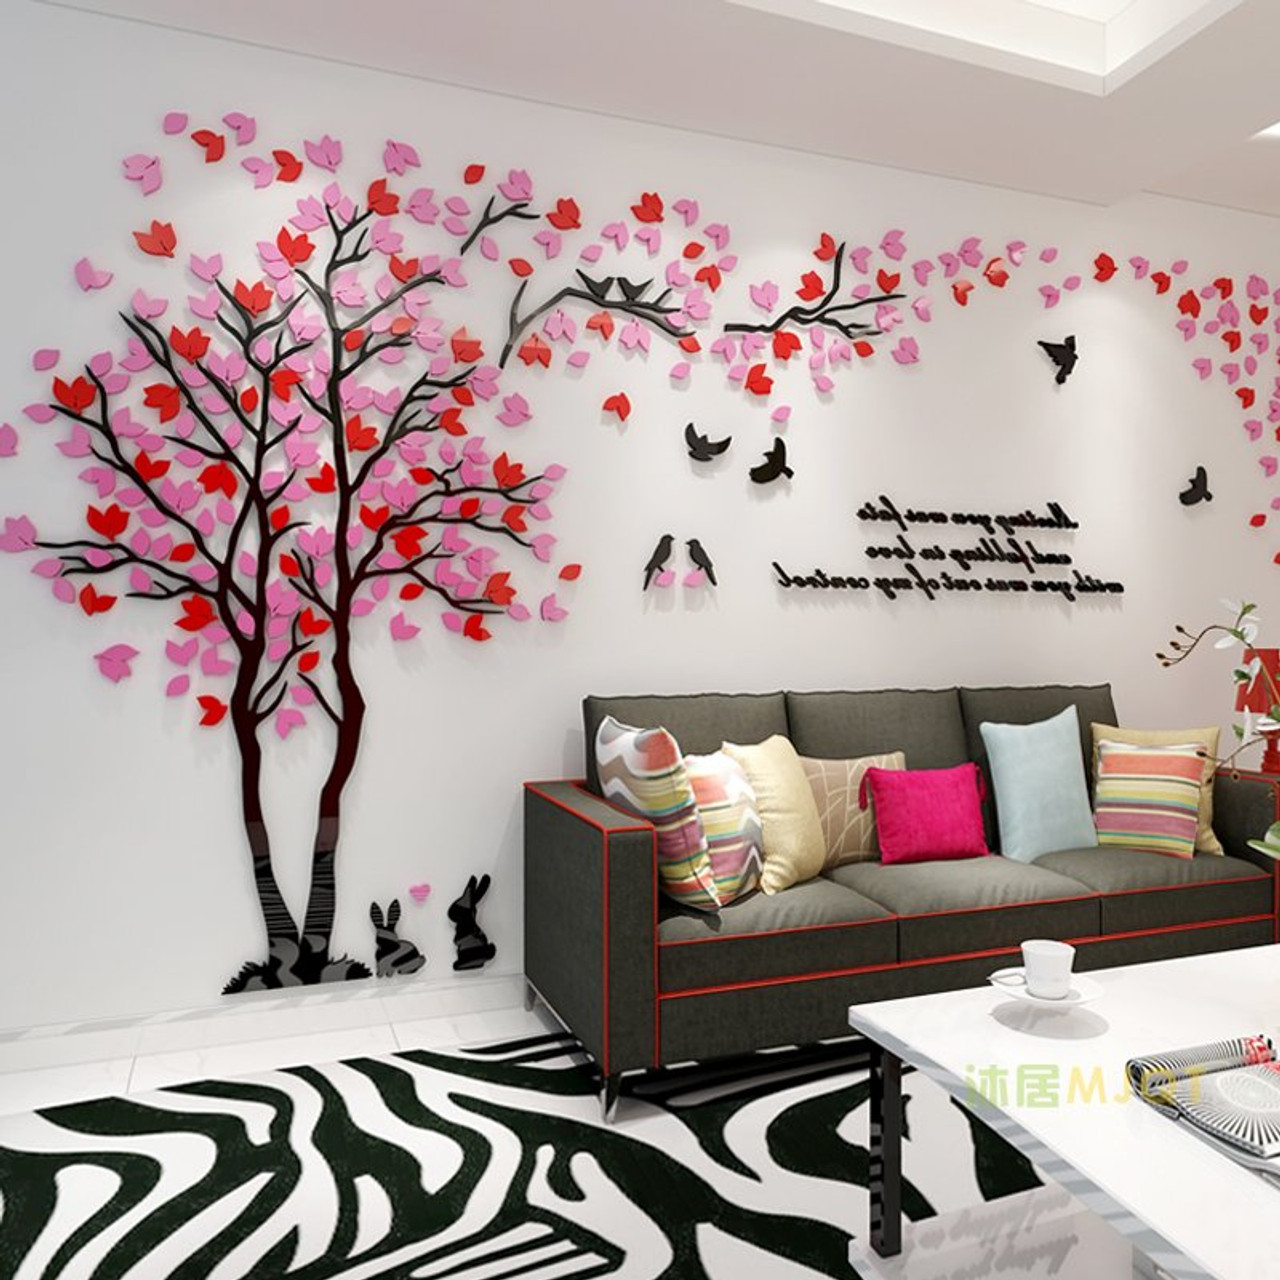 Creative Couple Tree 3d Wall Stickers Living Room Bedroom Home Wall Art Decor Diy Acrylic Wall Sticker Decal Cartoon Big Tree Onshopdeals Com